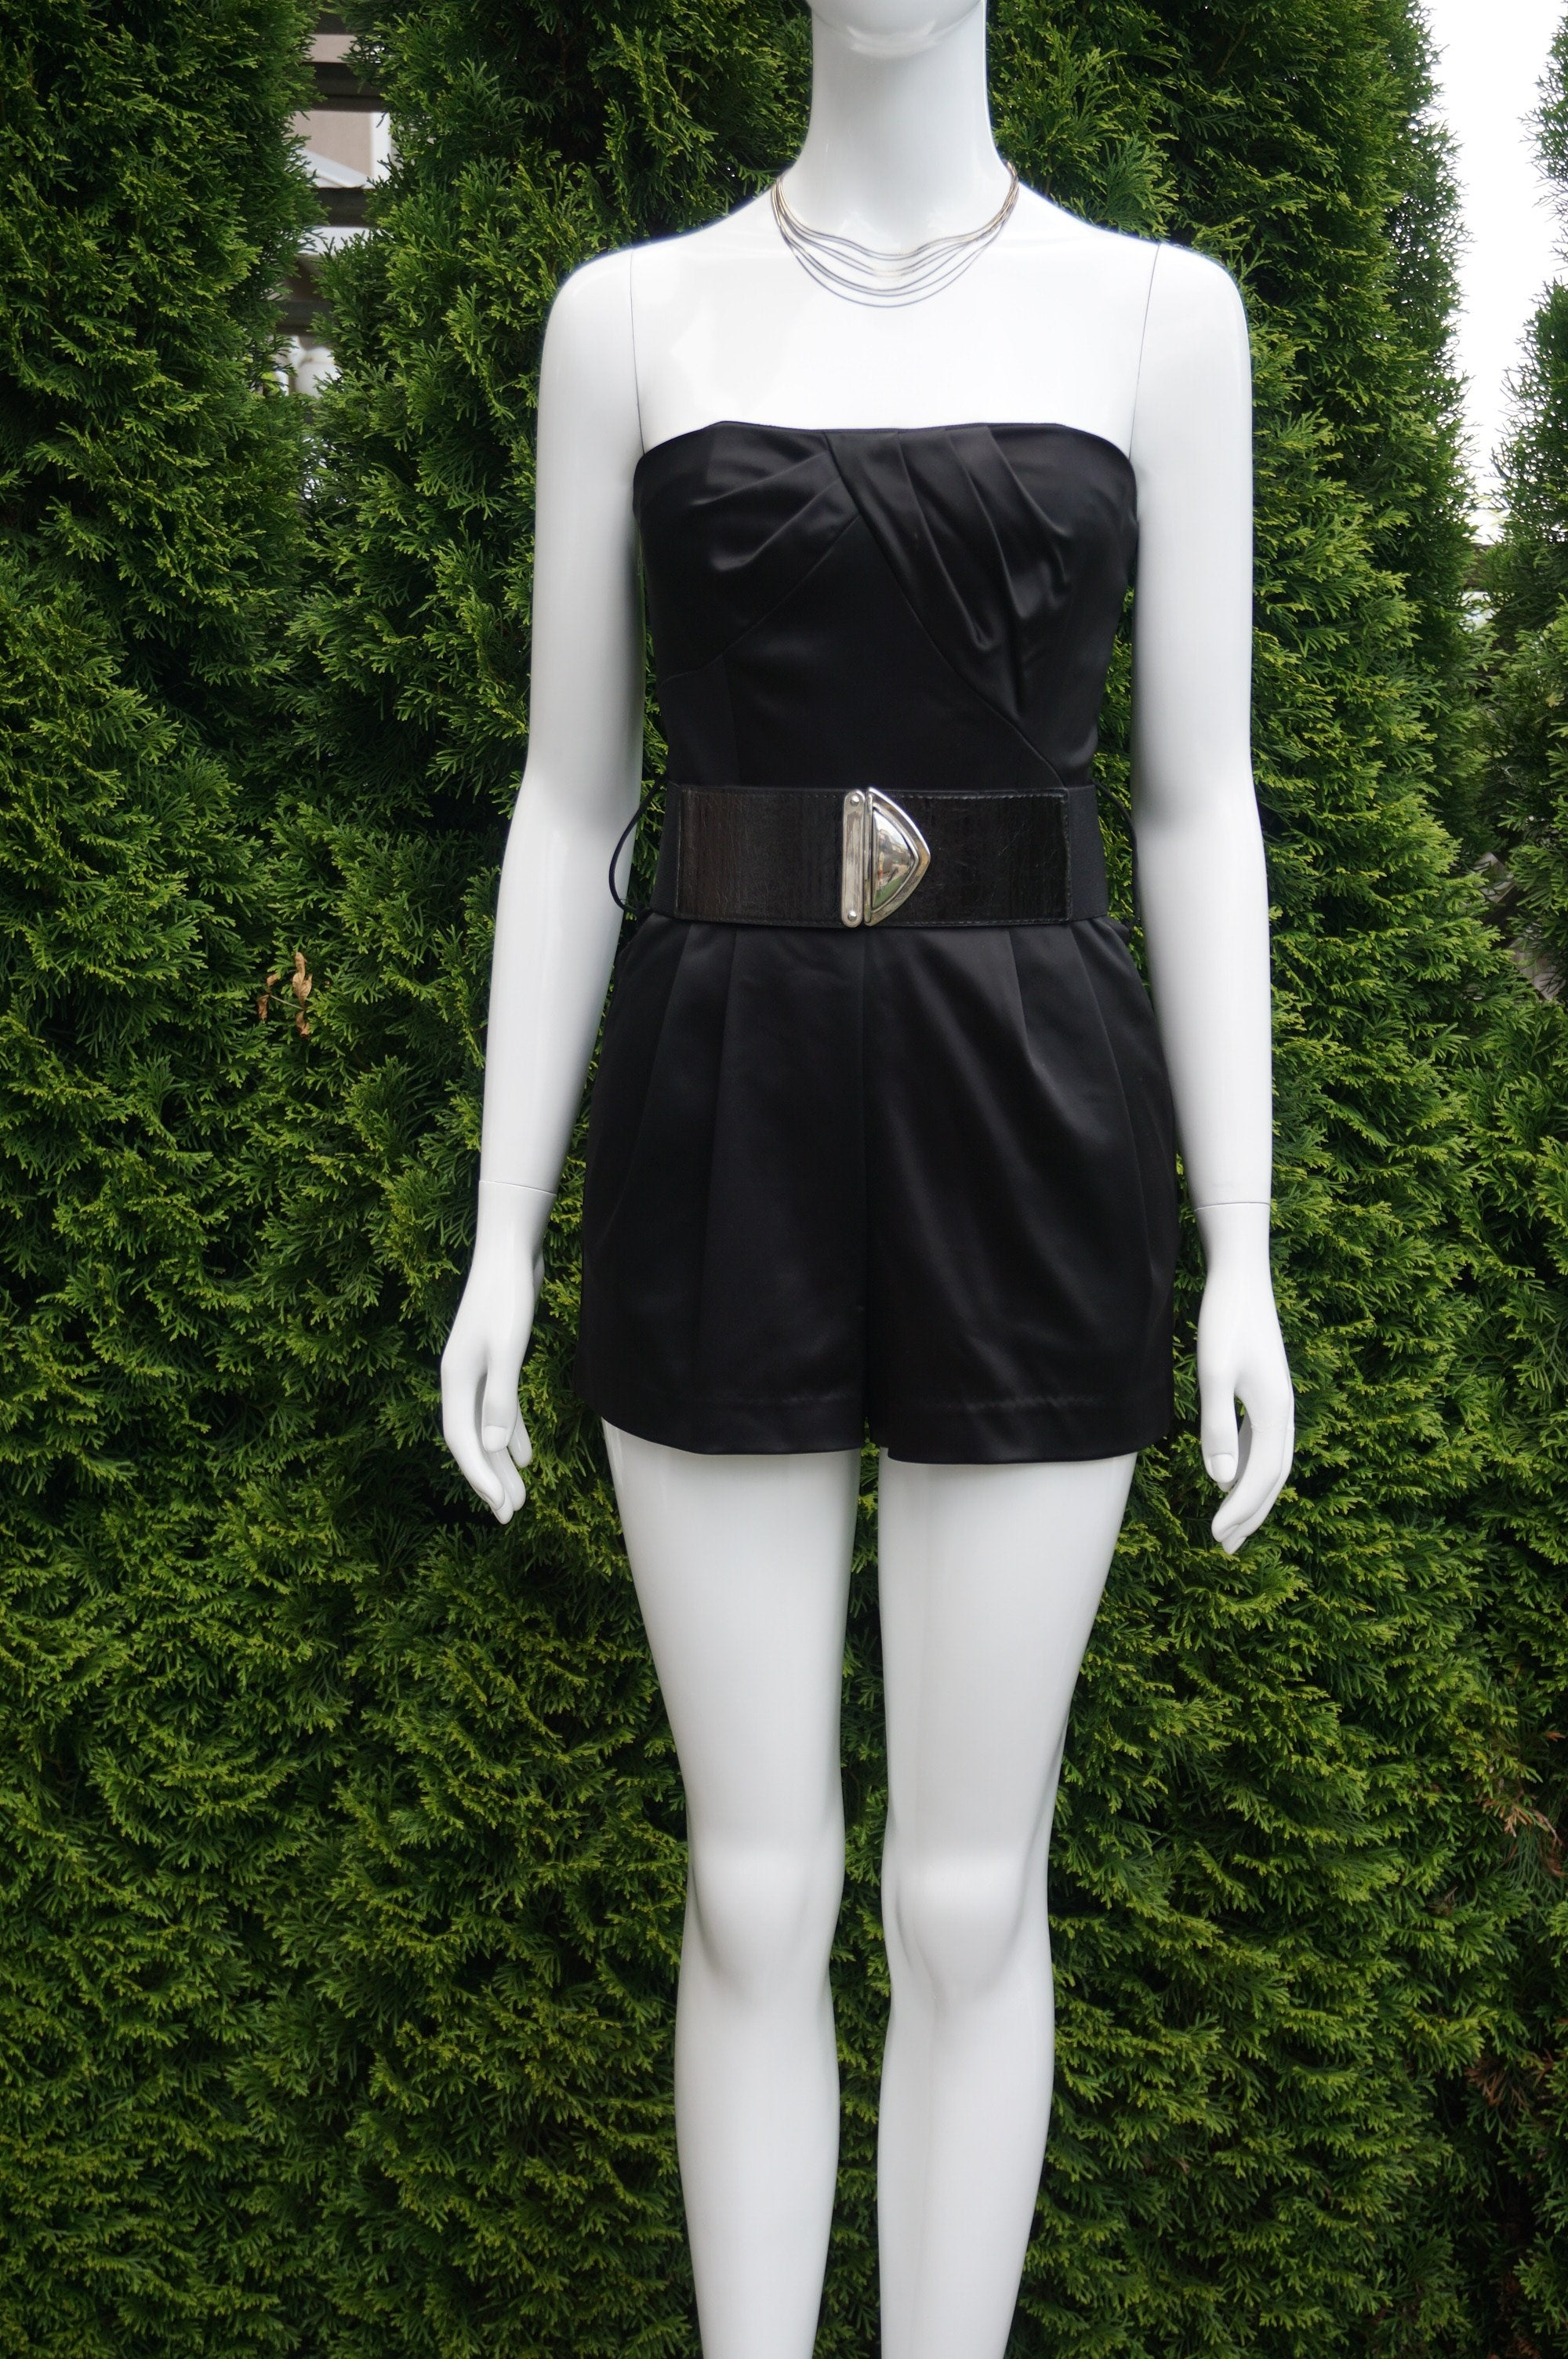 Bebe Strapless Heart Solid Black Mini Romper, This Super Stylish and Sexy Mini Romper helps you stand out in the crowd in concerts and night clubs. Complimentaty belt. Breast 31 inches, waist 25 inches, 22 inches length measured from top of breast., Black, women's Dresses & Rompers, women's Black Dresses & Rompers, Bebe women's Dresses & Rompers, Solid Black Jumpsuit, Solid Black Mini Romper, Tube Strapless mini romper